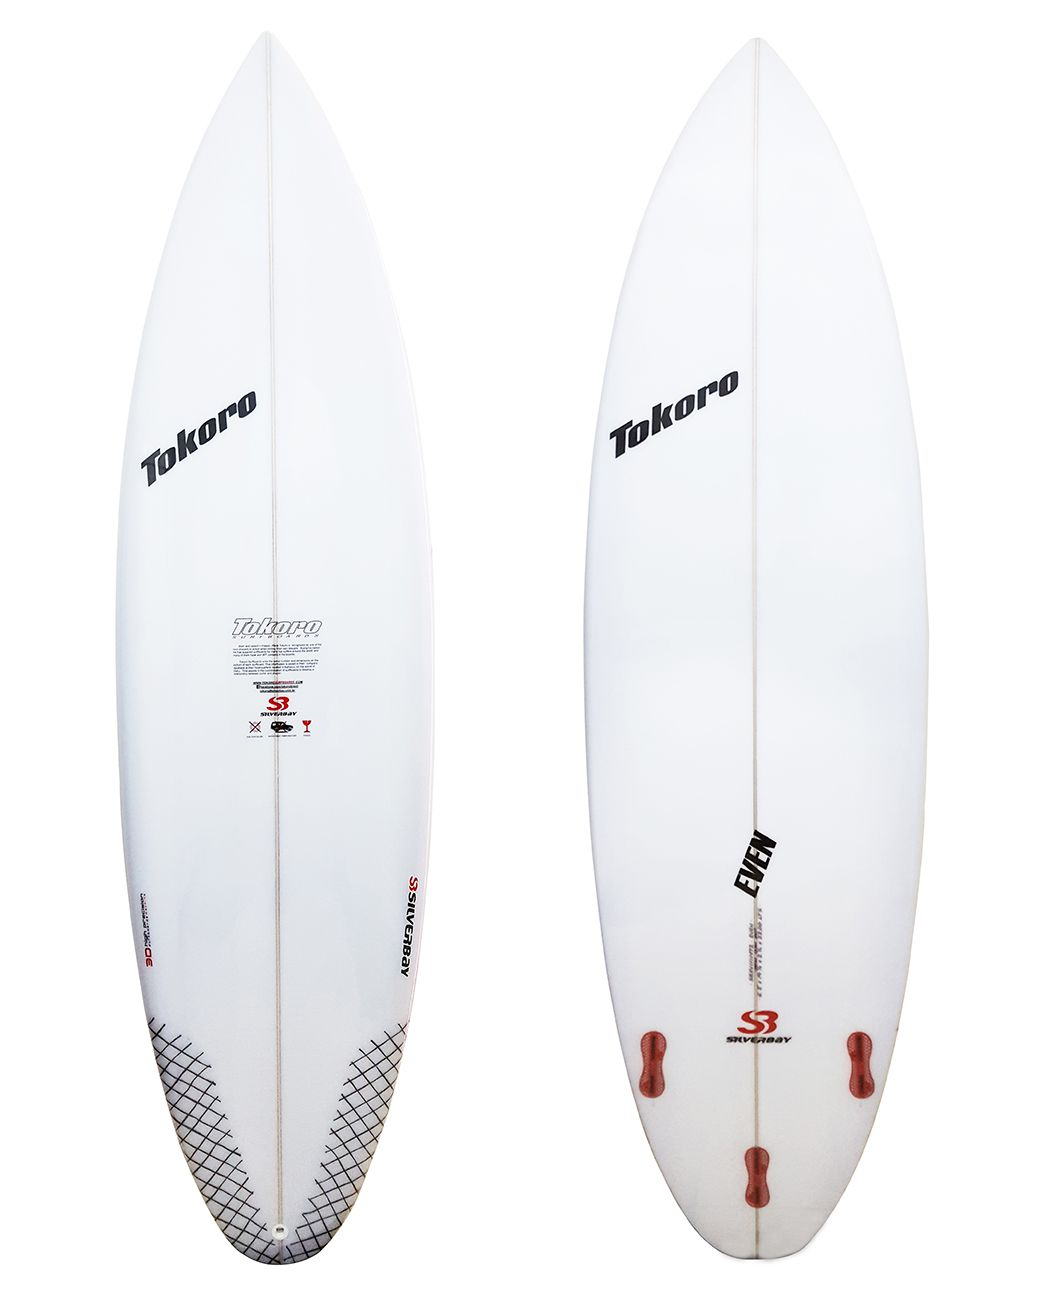 Tokoro 6'2'' Even FCS II